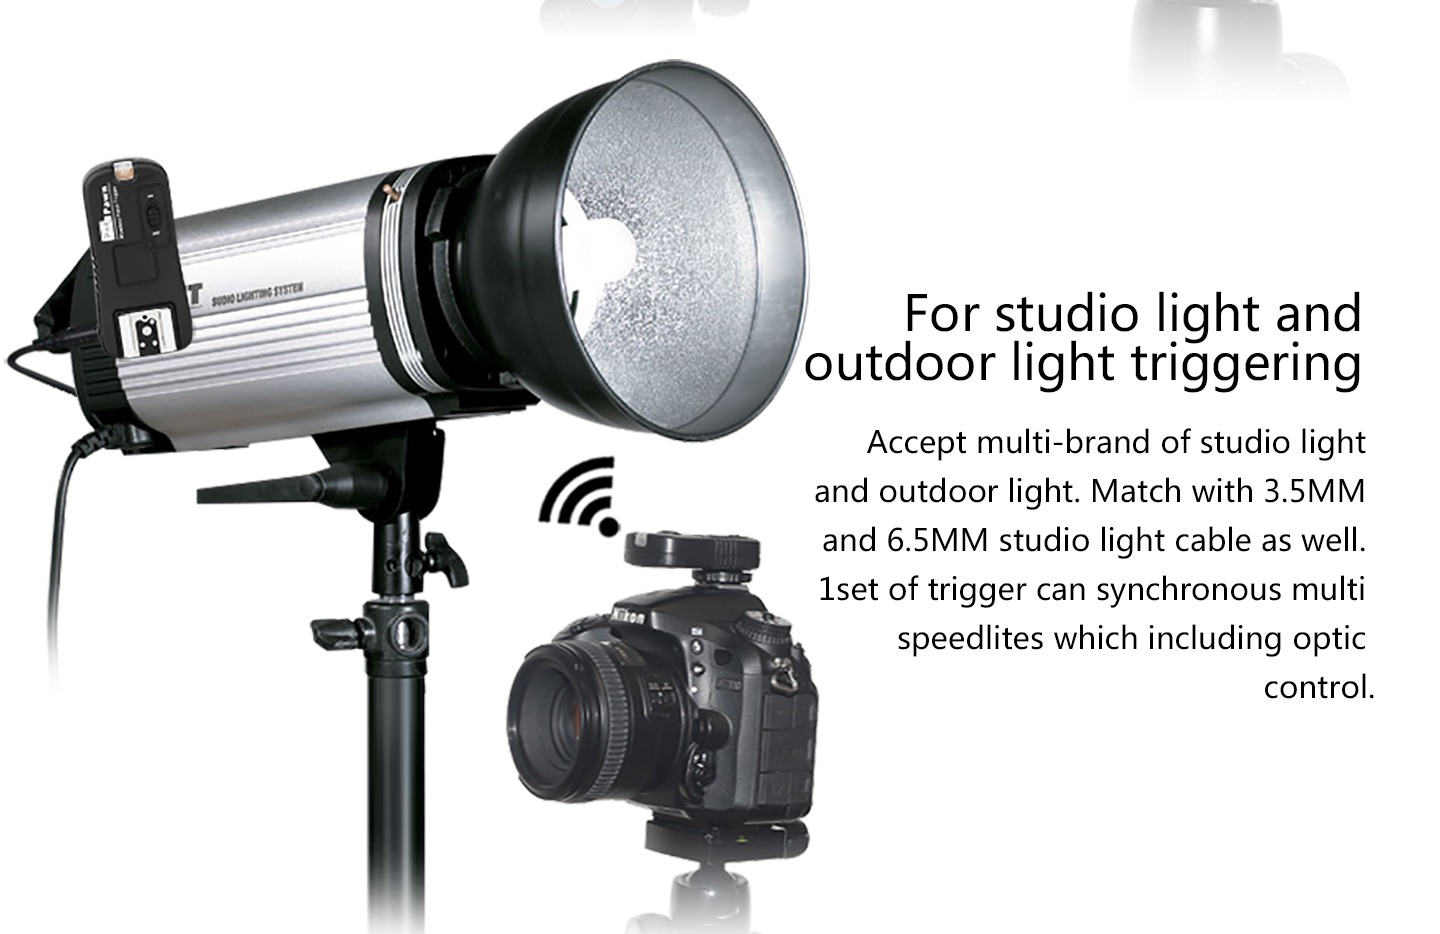 For studio light and outdooe light triggering